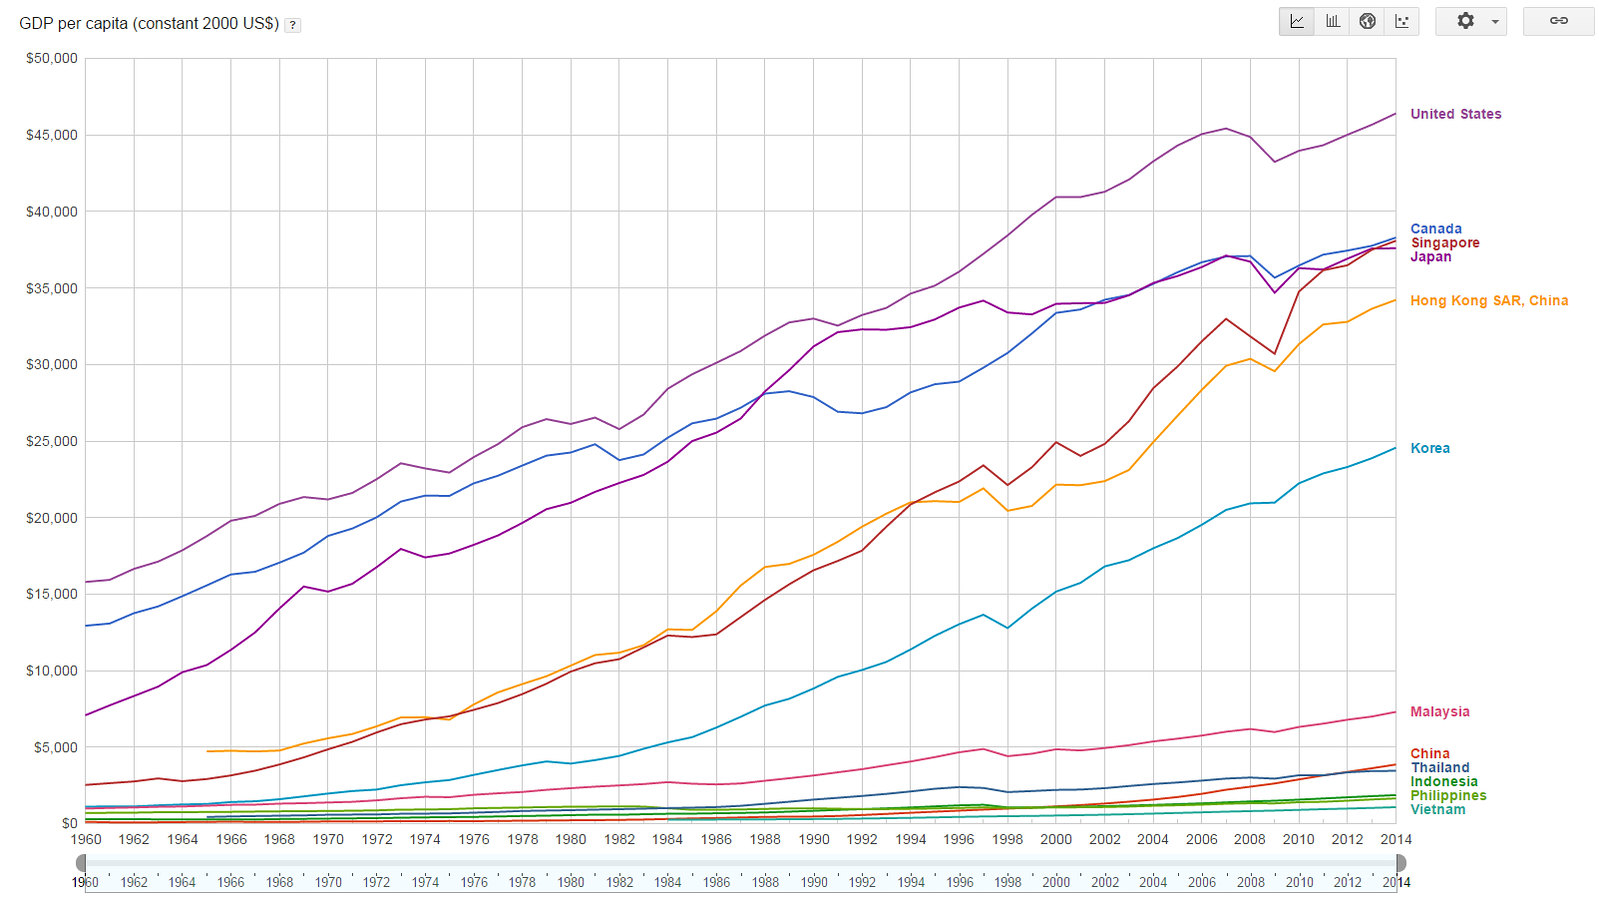 Per Capita Growth Rate Then In 2050 We Will Be Having 2930 Gdp Per Capita Constant 2000 Us That Is Even Lower Than Present Day Thailand S 3 451